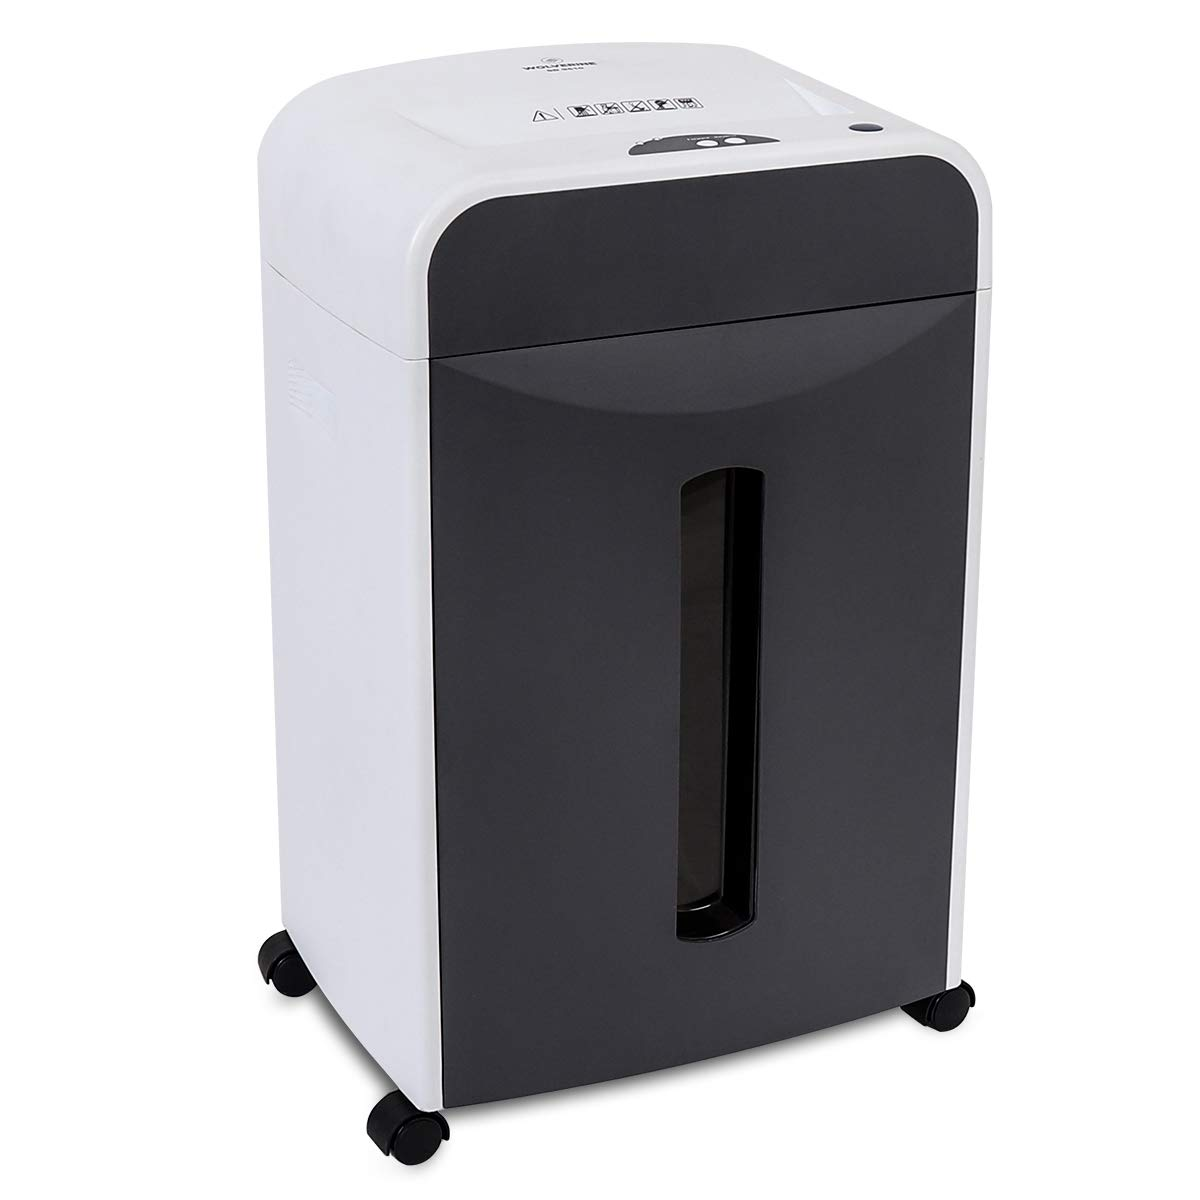 WOLVERINE 6-Sheet 2x6mm Super Micro Cut High Security Level P5 Ultra Quiet Paper/Credit Card Shredder for Home Office with Manganese Cutter and 5 Gallons Pullout Waste Bin SD9610 (White)